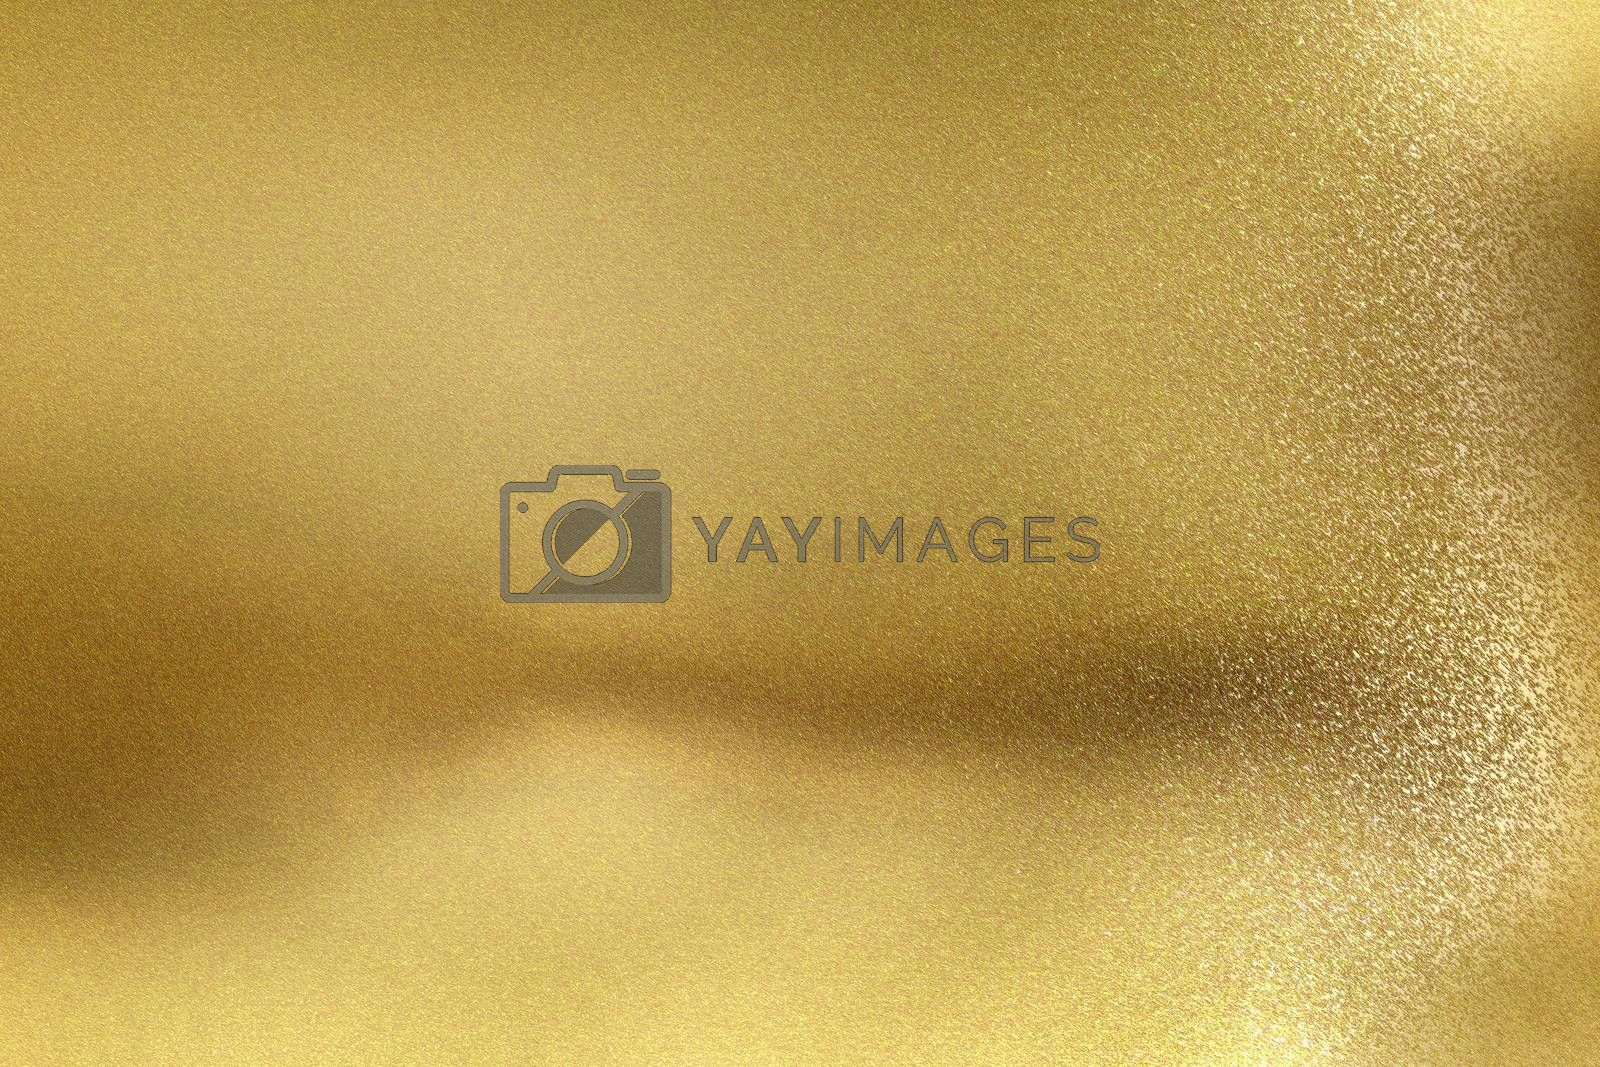 Royalty free image of Glowing golden metal wall with scratched surface, abstract texture background by mouu007